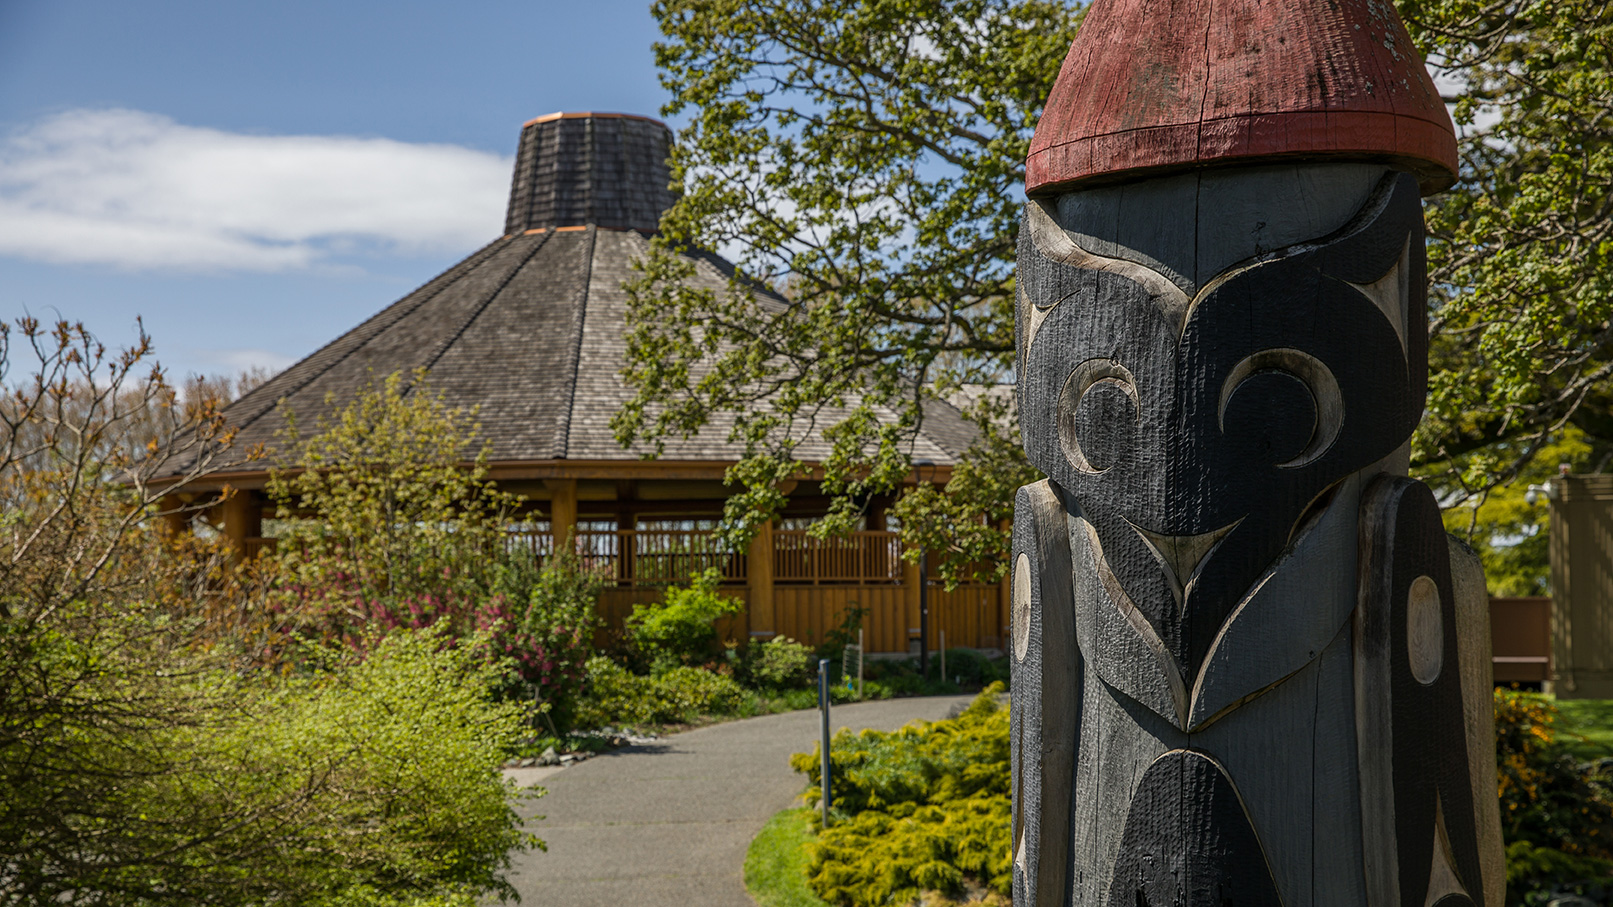 Natsamaht Indigenous place and Totem pole on campus